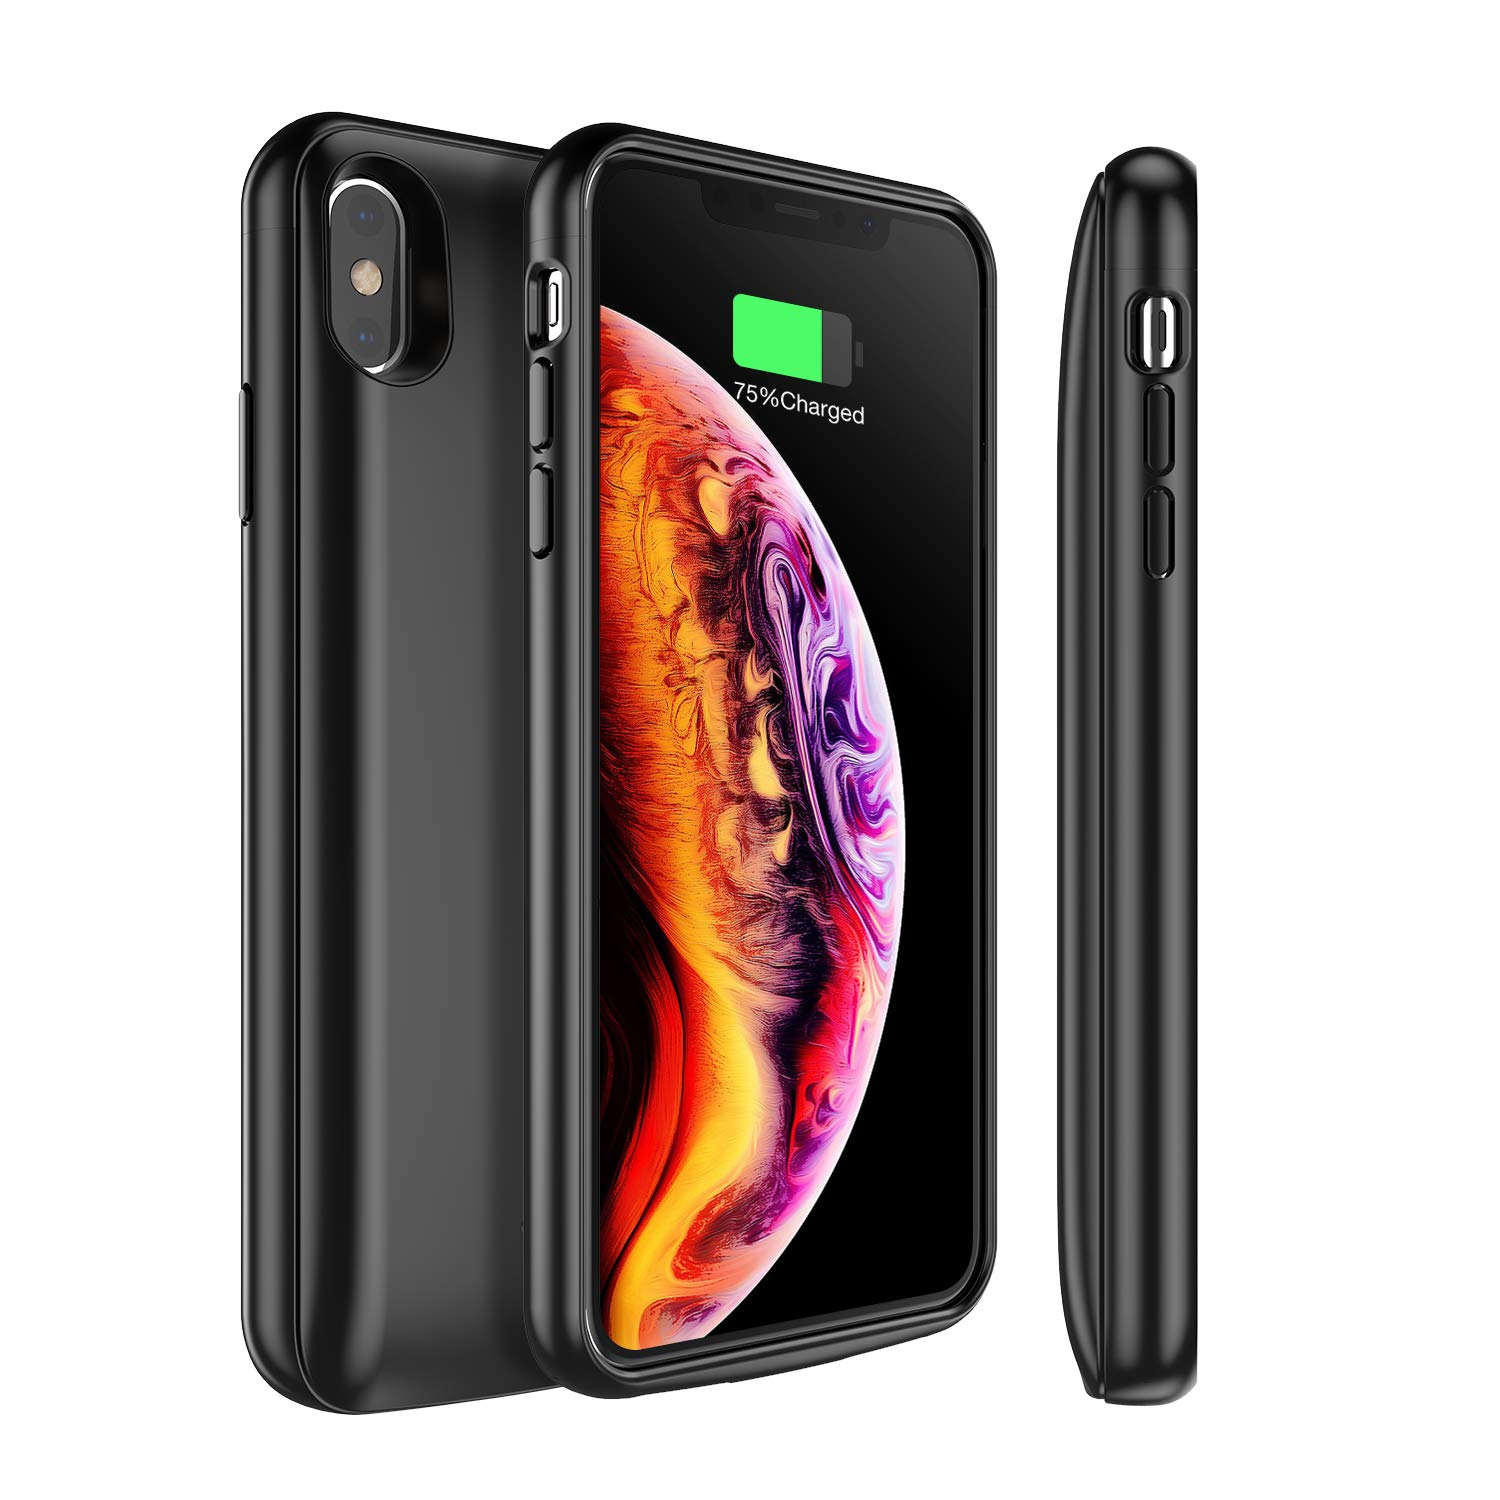 [Upgraded] Snowpink iPhone X/XS Battery Case Qi Wireless Charging, 4000mAh Slim Portable Charger Case Rechargeable Extended Battery Protective Charging Case Compatible iPhone XS/X/10(5.8 Inch)